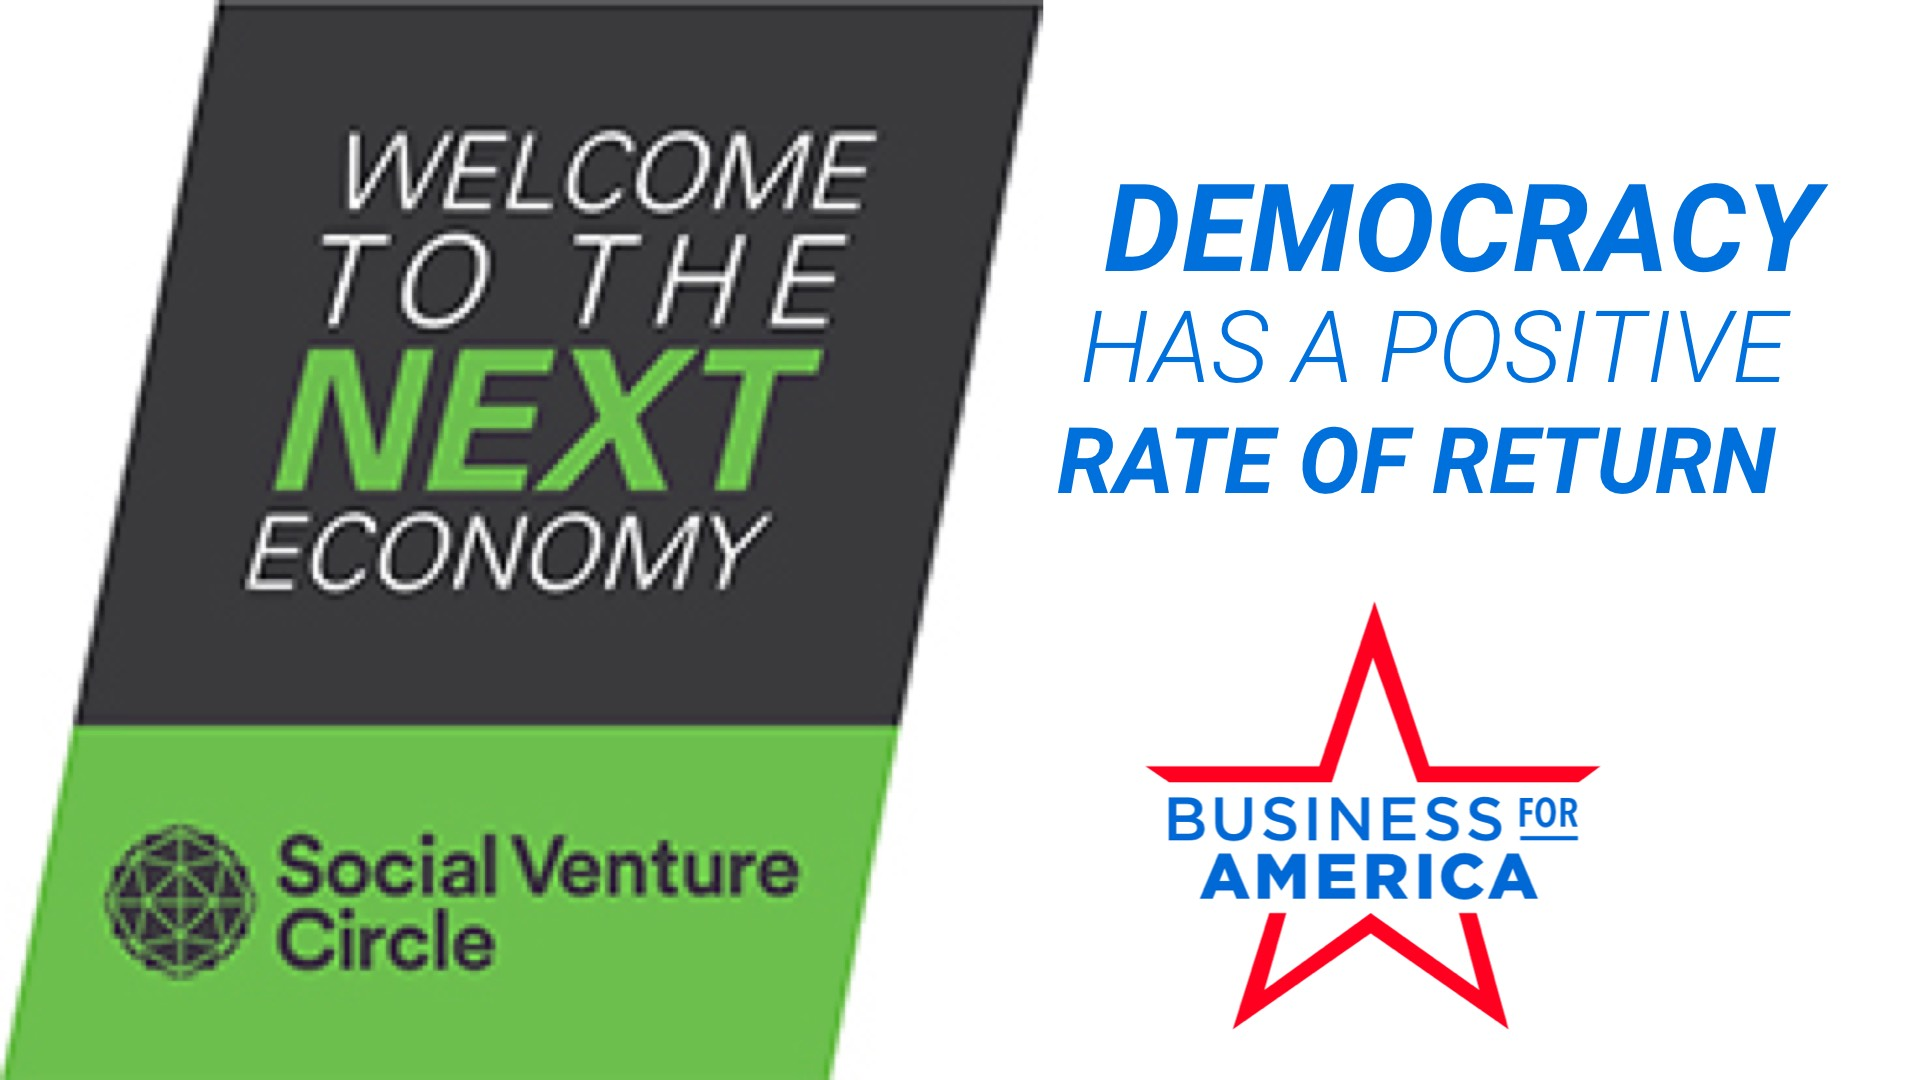 NEXT Economy LIVE! Strengthening our Democracy: A Smart Way to Create a Positive Rate of Return